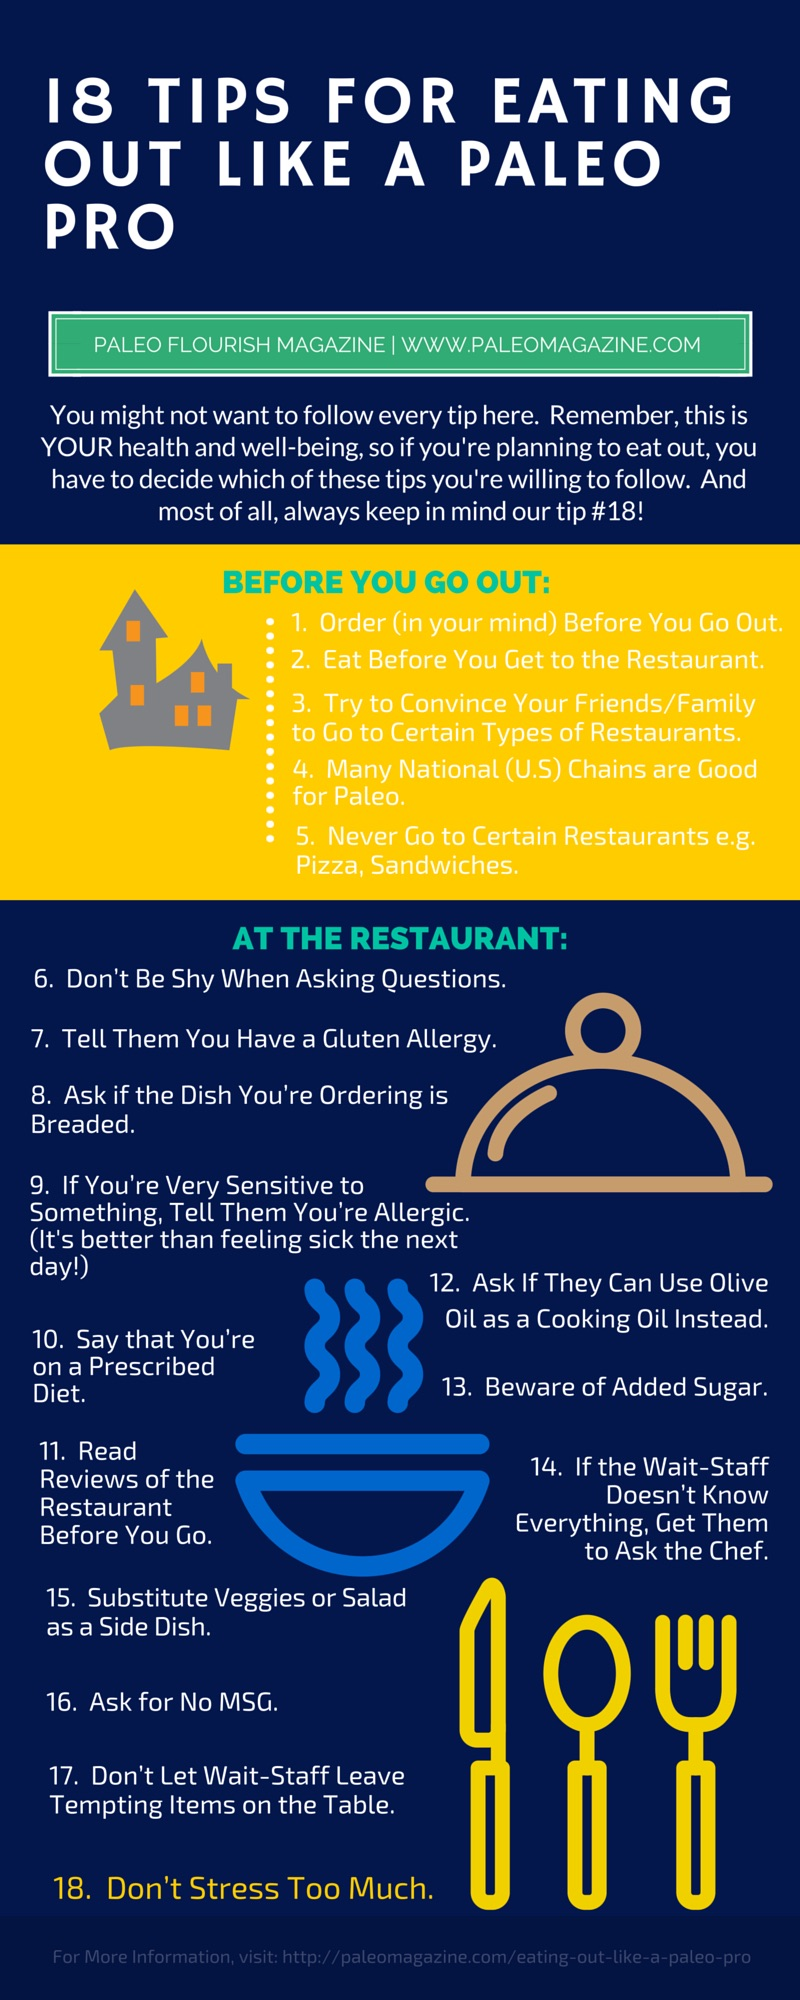 Eating Out Paleo at Restaurants Infographic Image